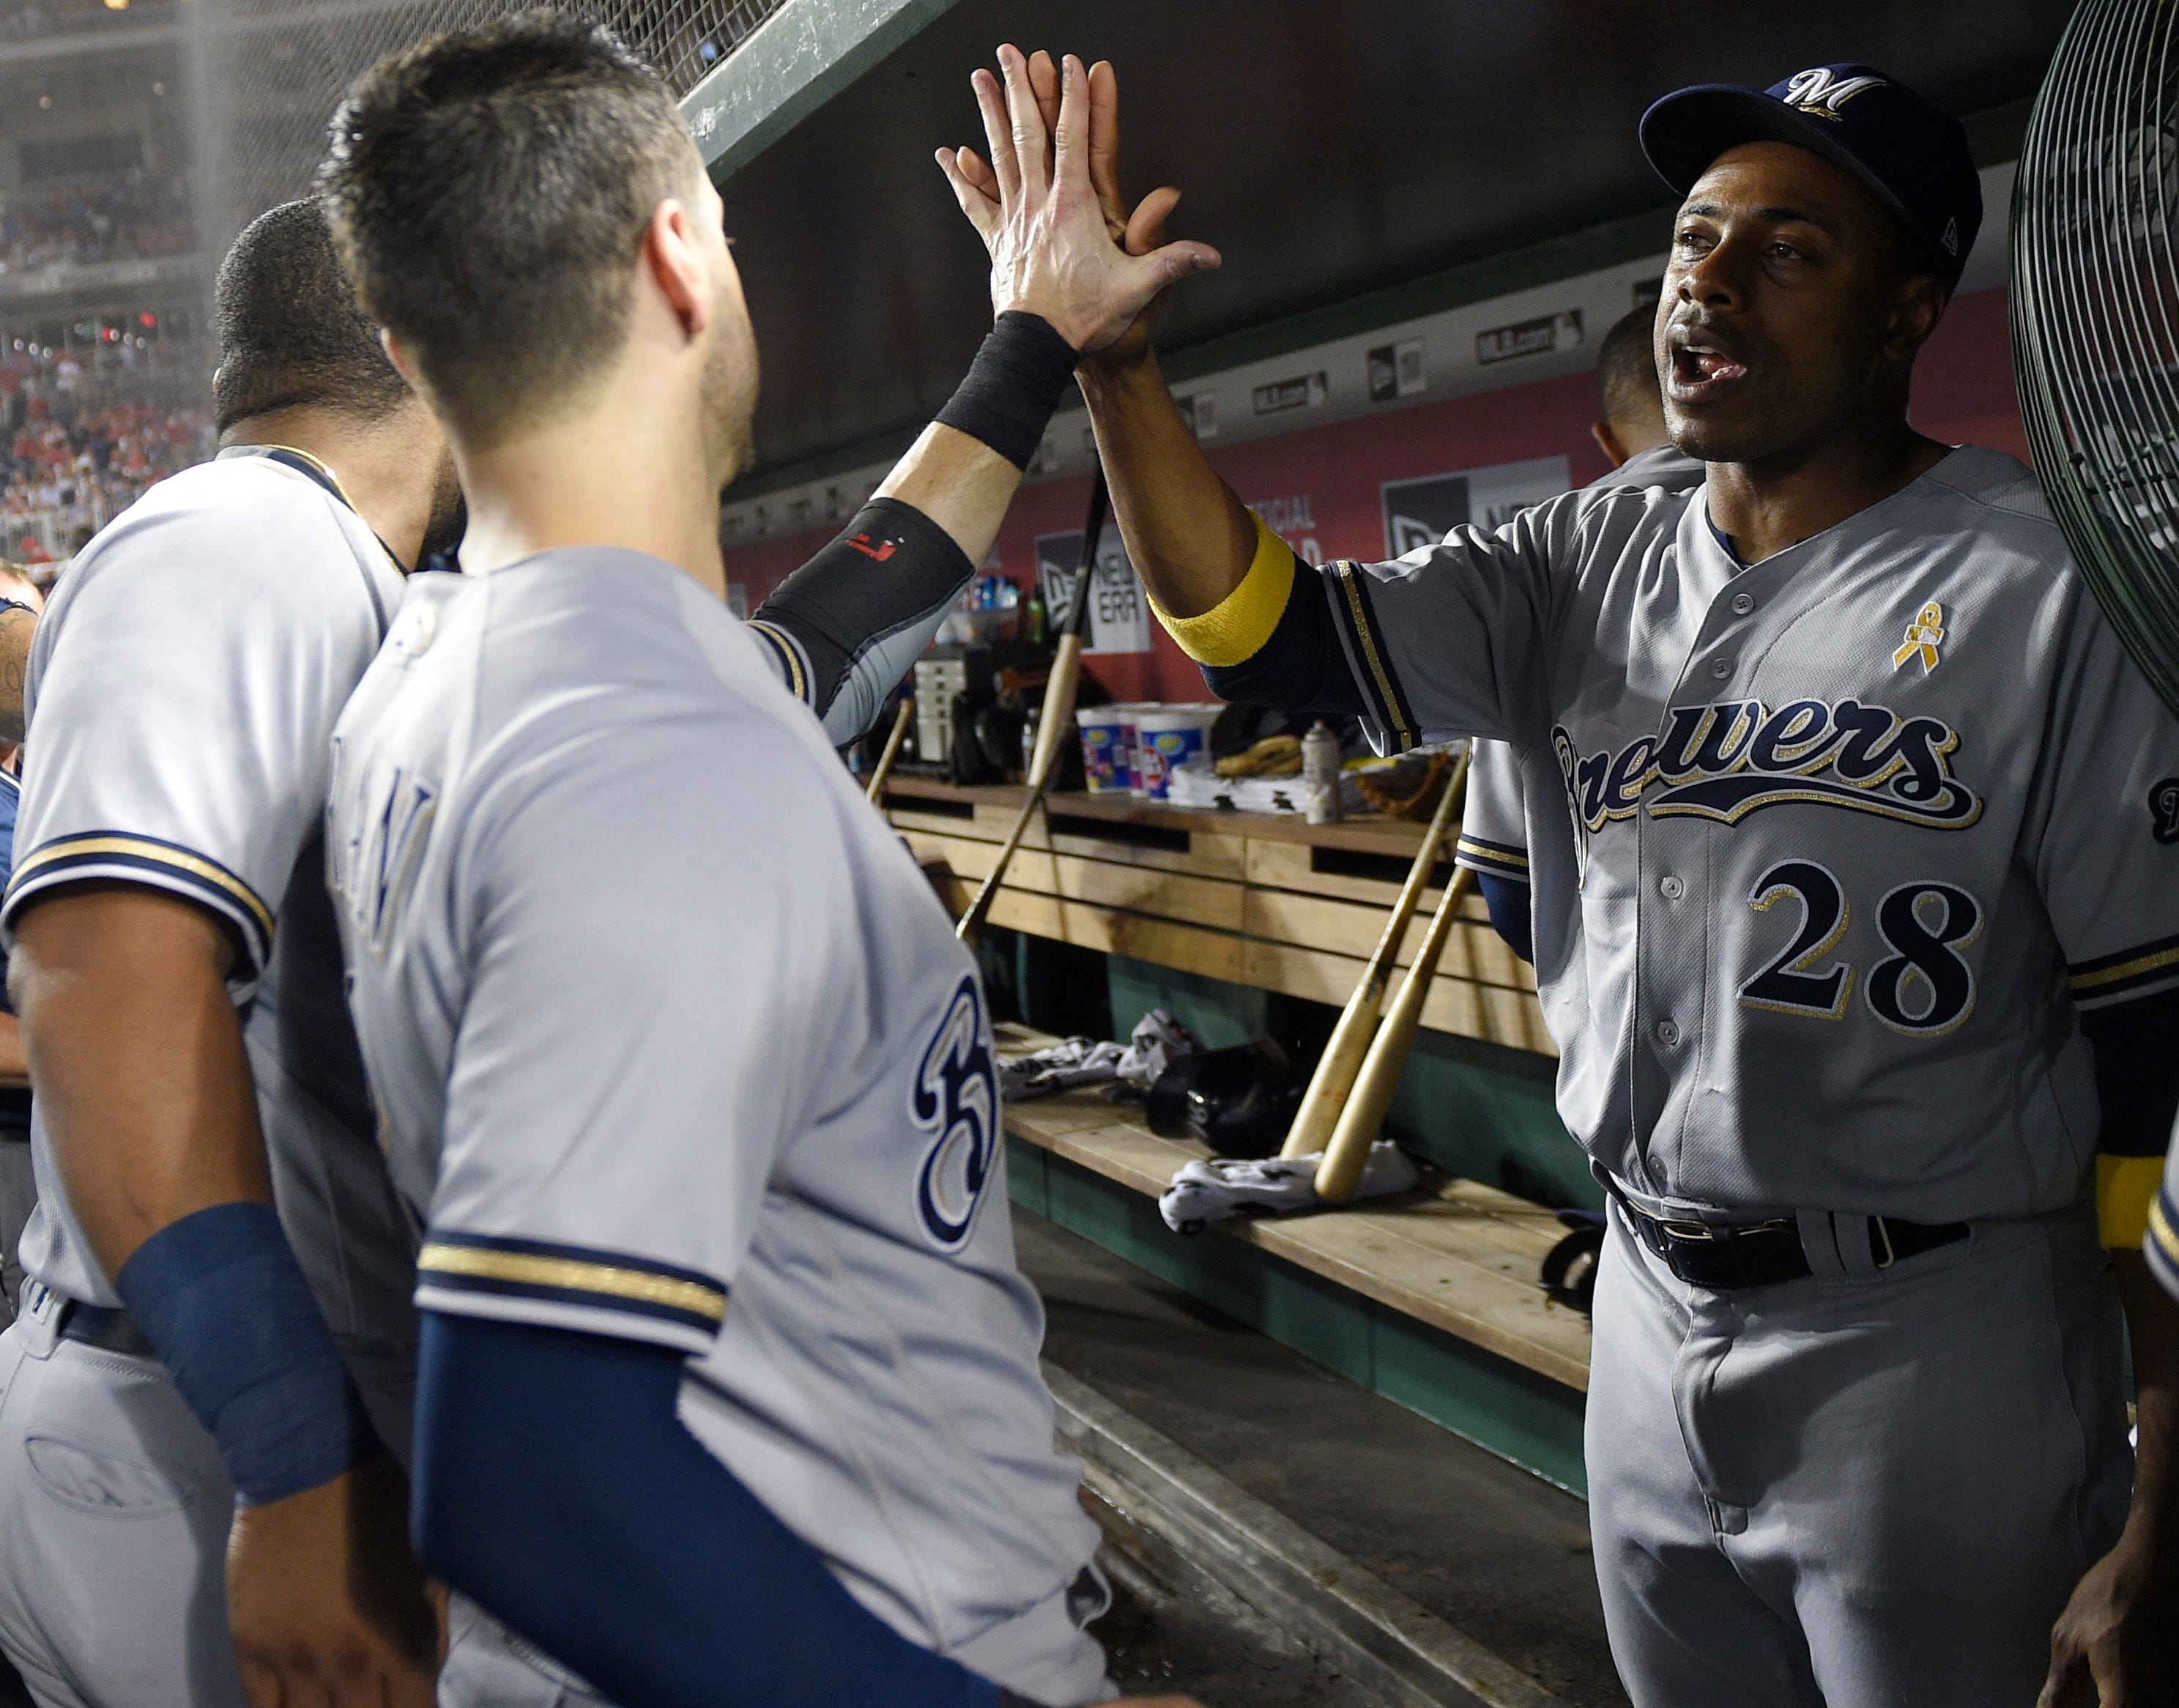 Curtis Granderson (right) gives a high-five to Brewers teammate Ryan Braun during a game against the Nationals.